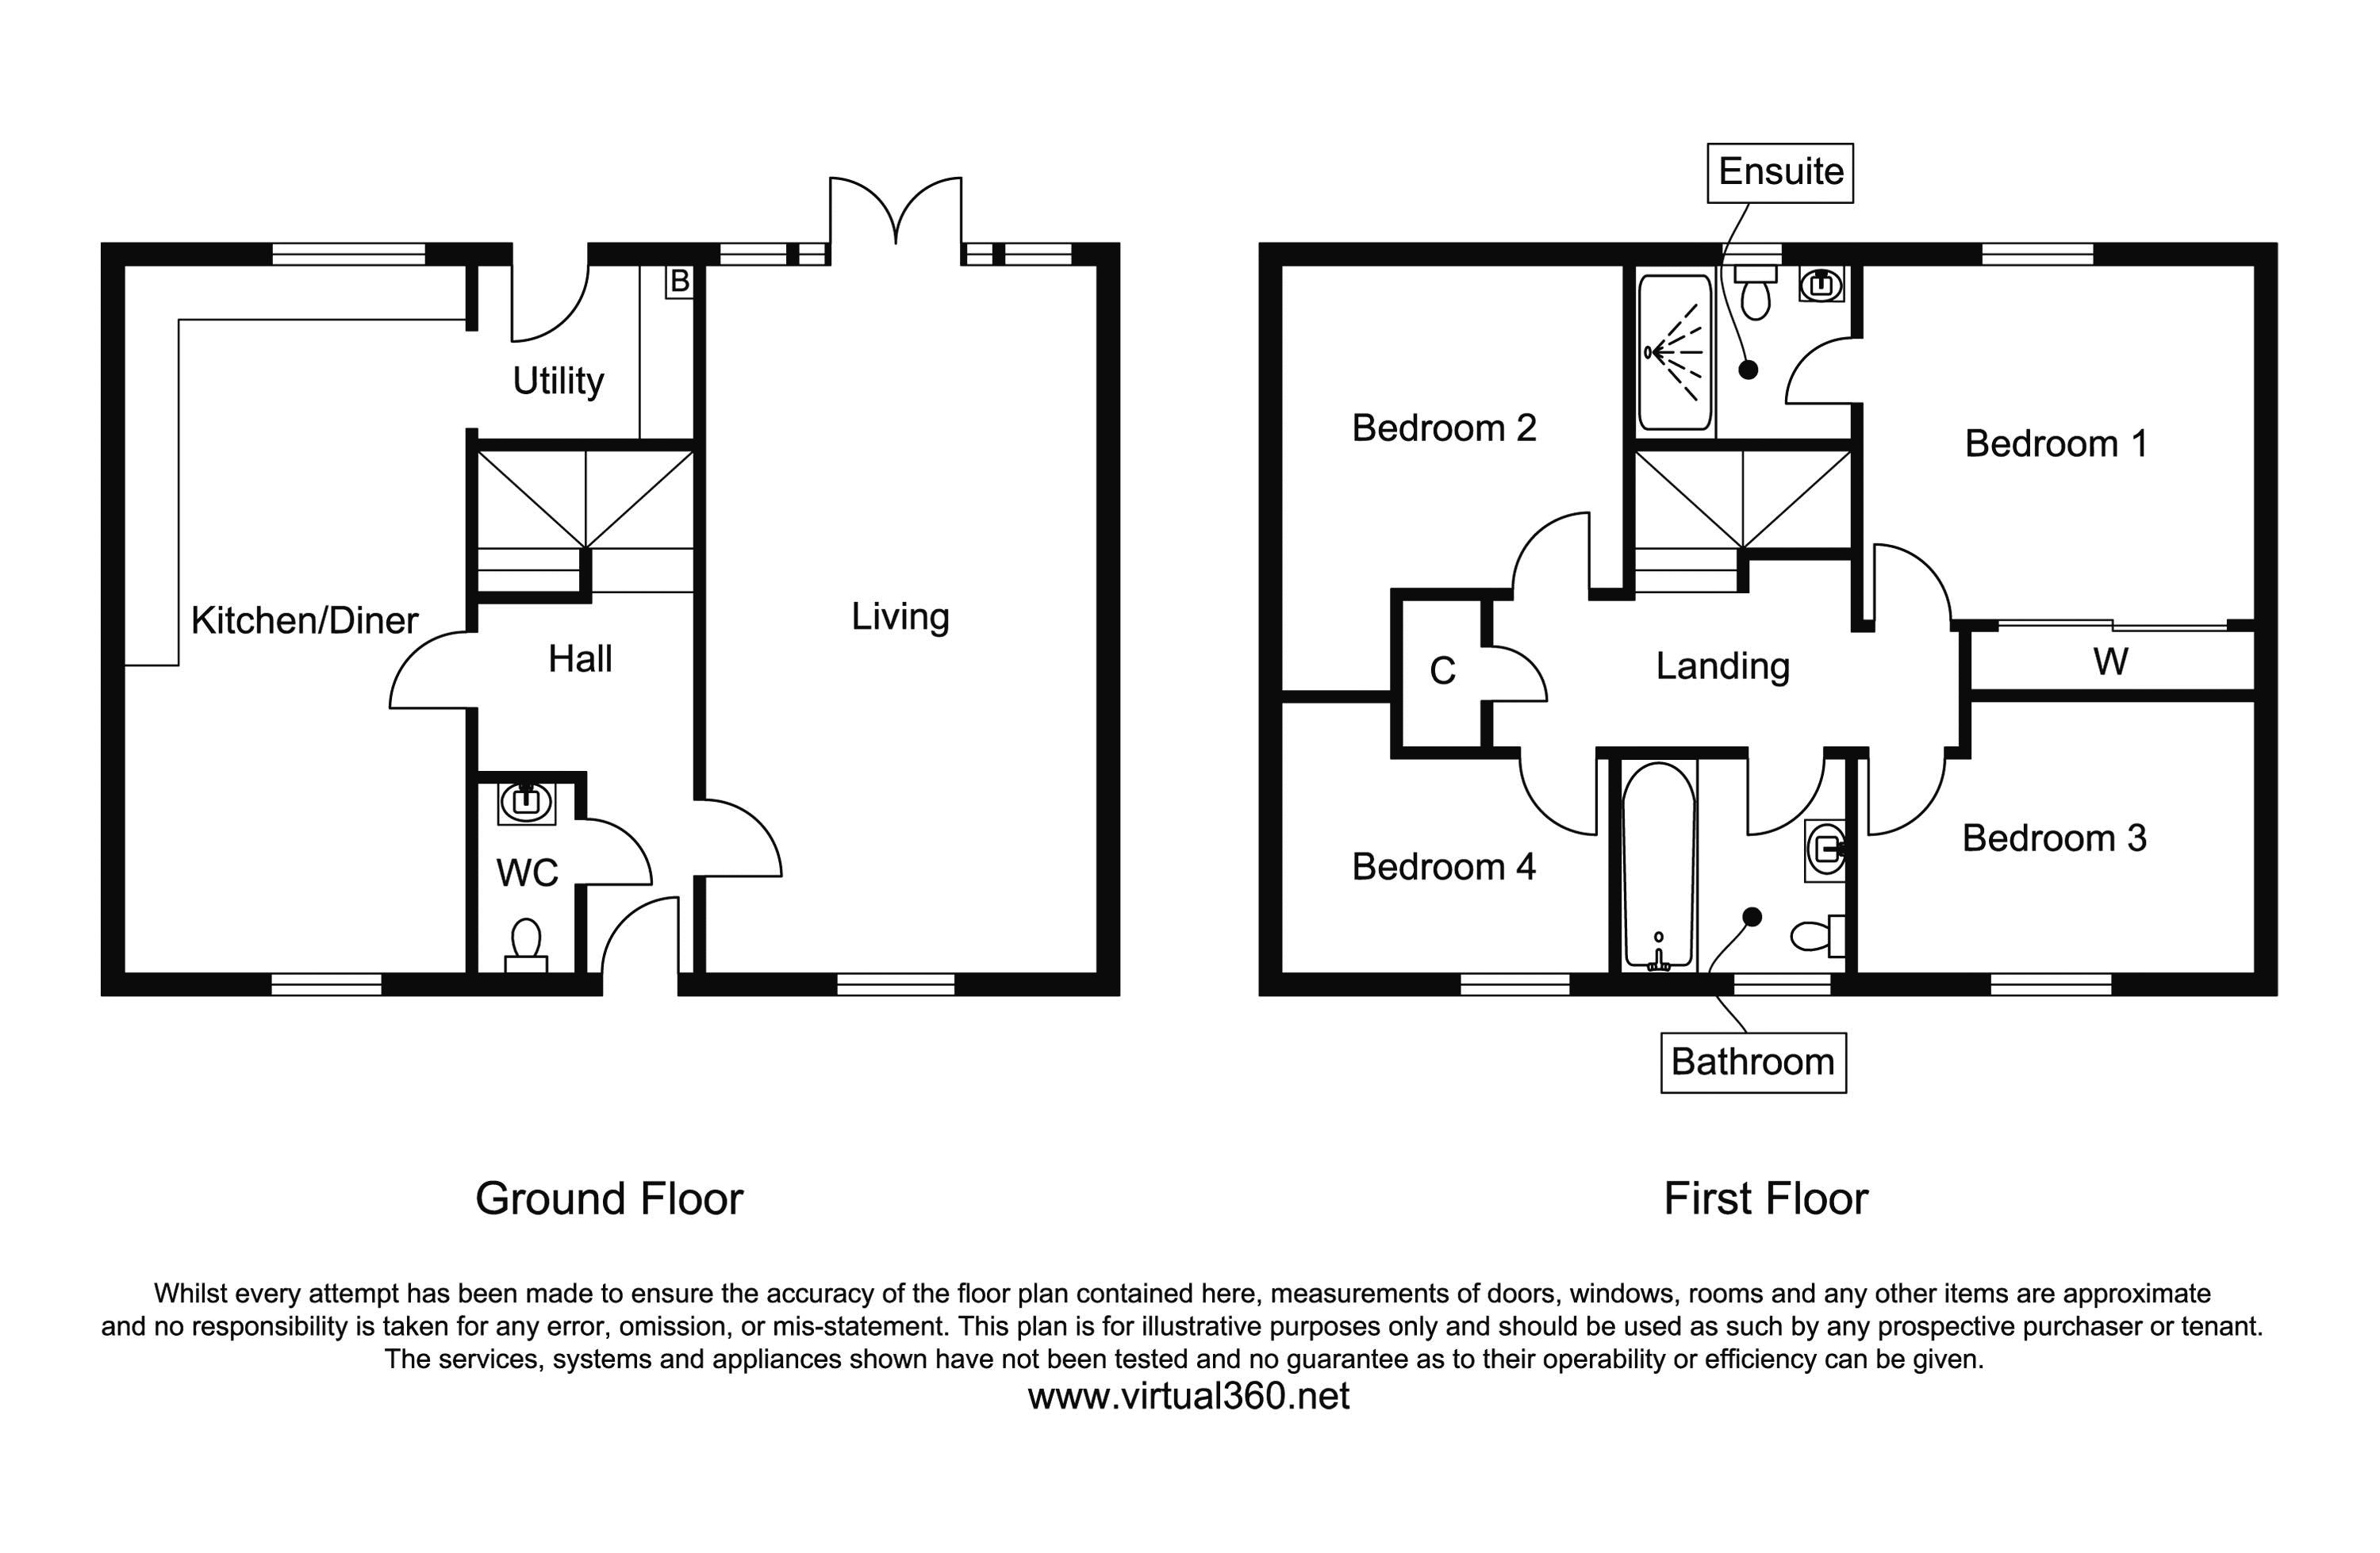 Norman Croft, Shefford floor plan